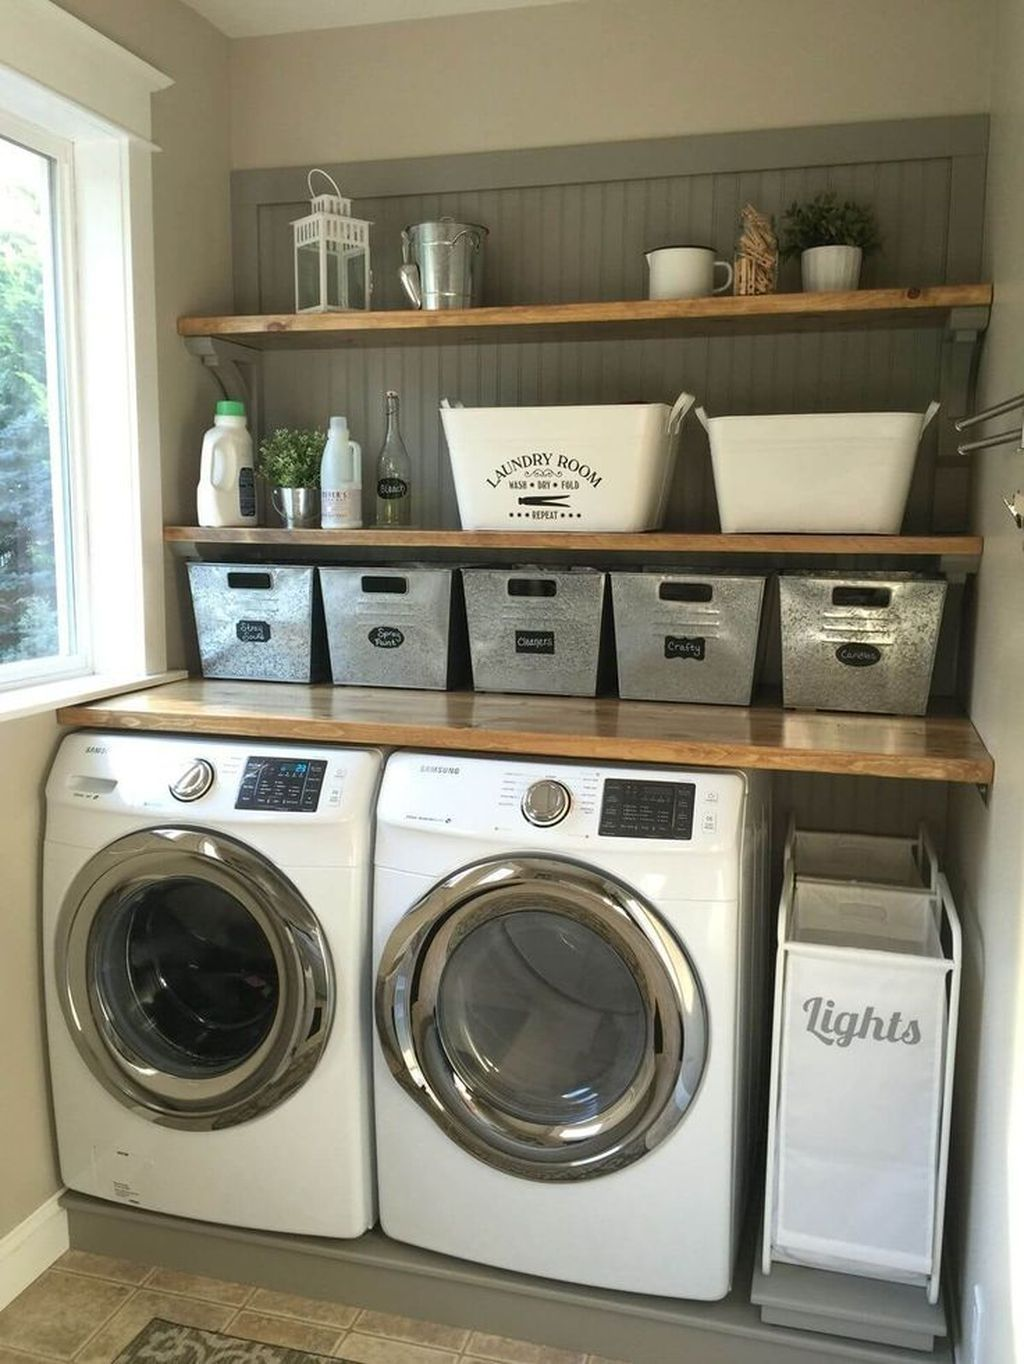 47 Laundry Room Storage Organization #laundryrooms